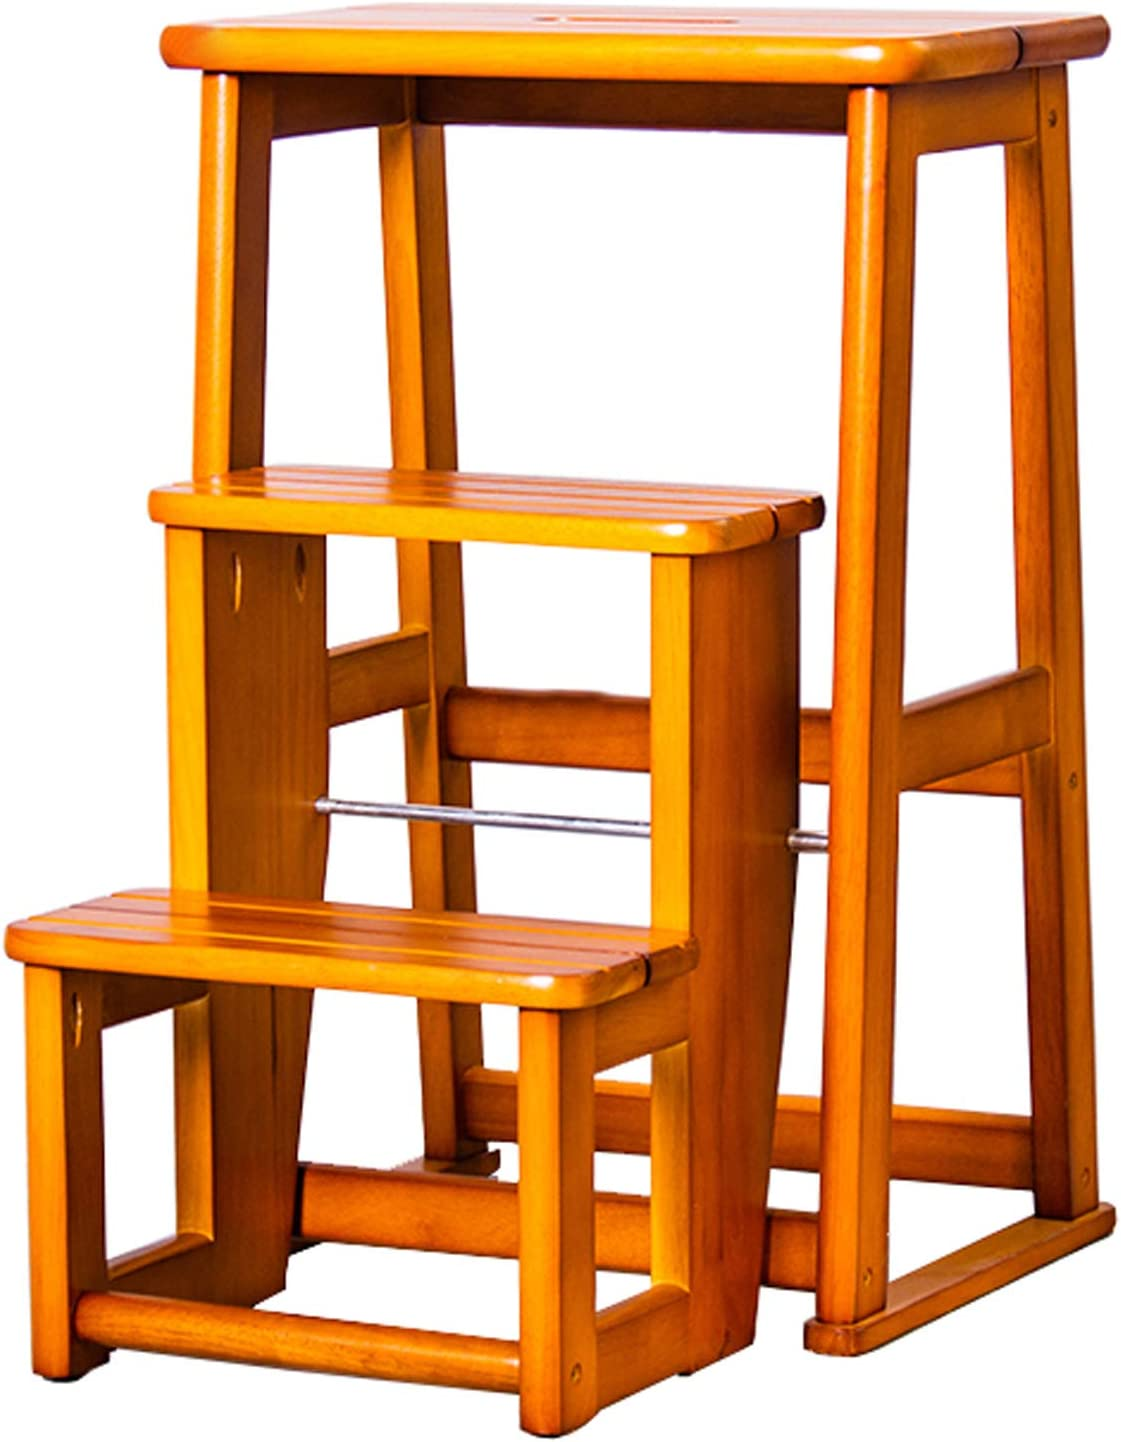 QDY 2 sold out 3 Step Fixed price for sale Wood PortableFoldUpFootstool Wooden Ladder Fold